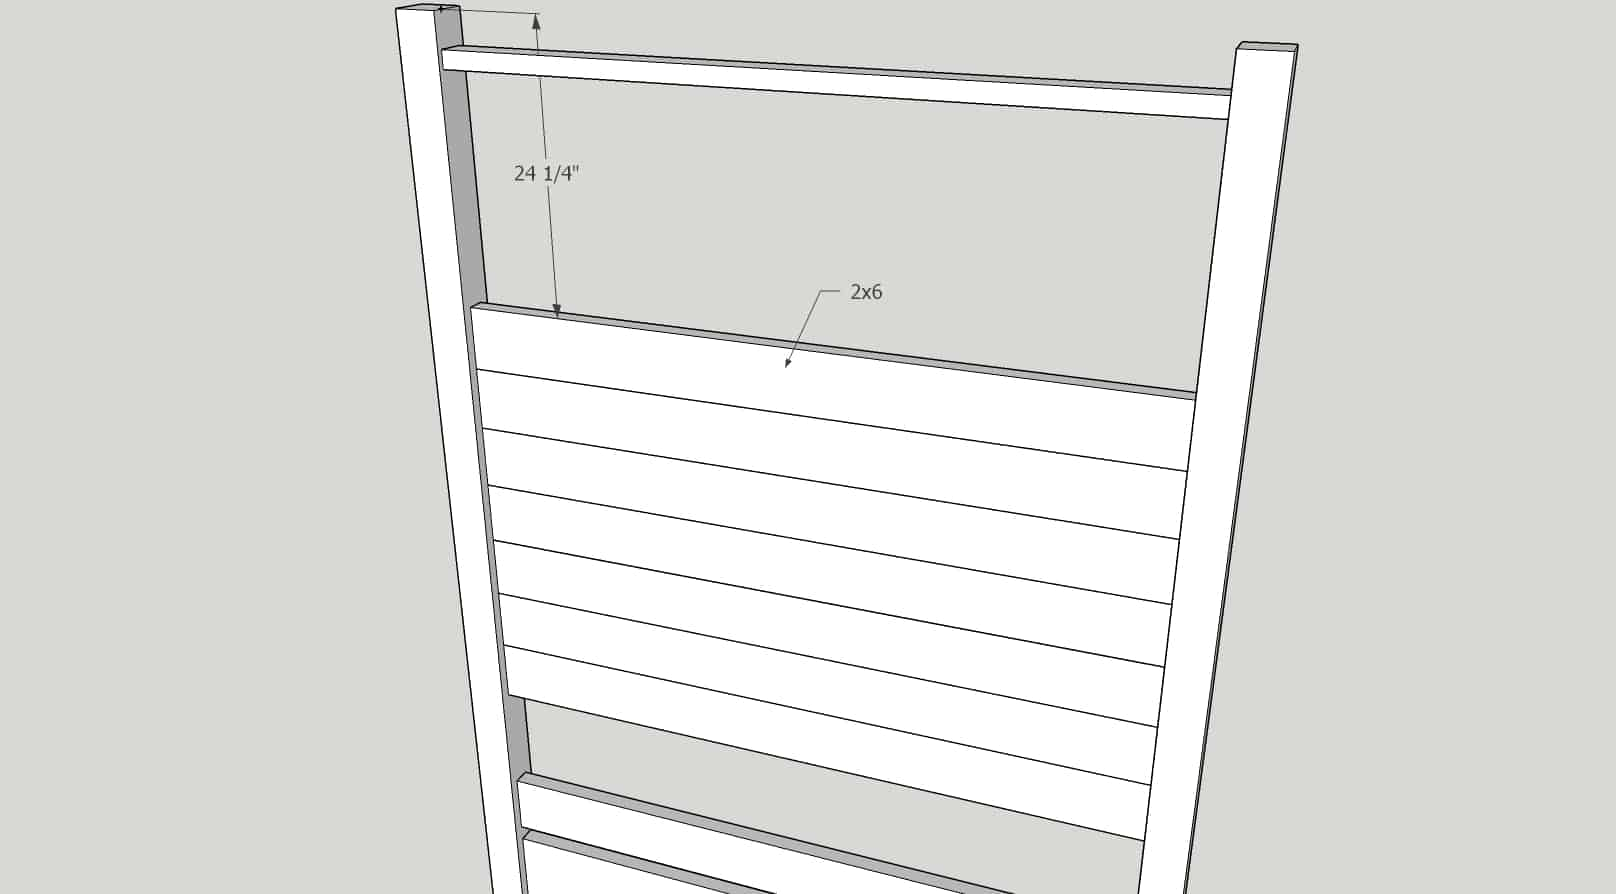 How to build the headboard of the DIY queen bed frame